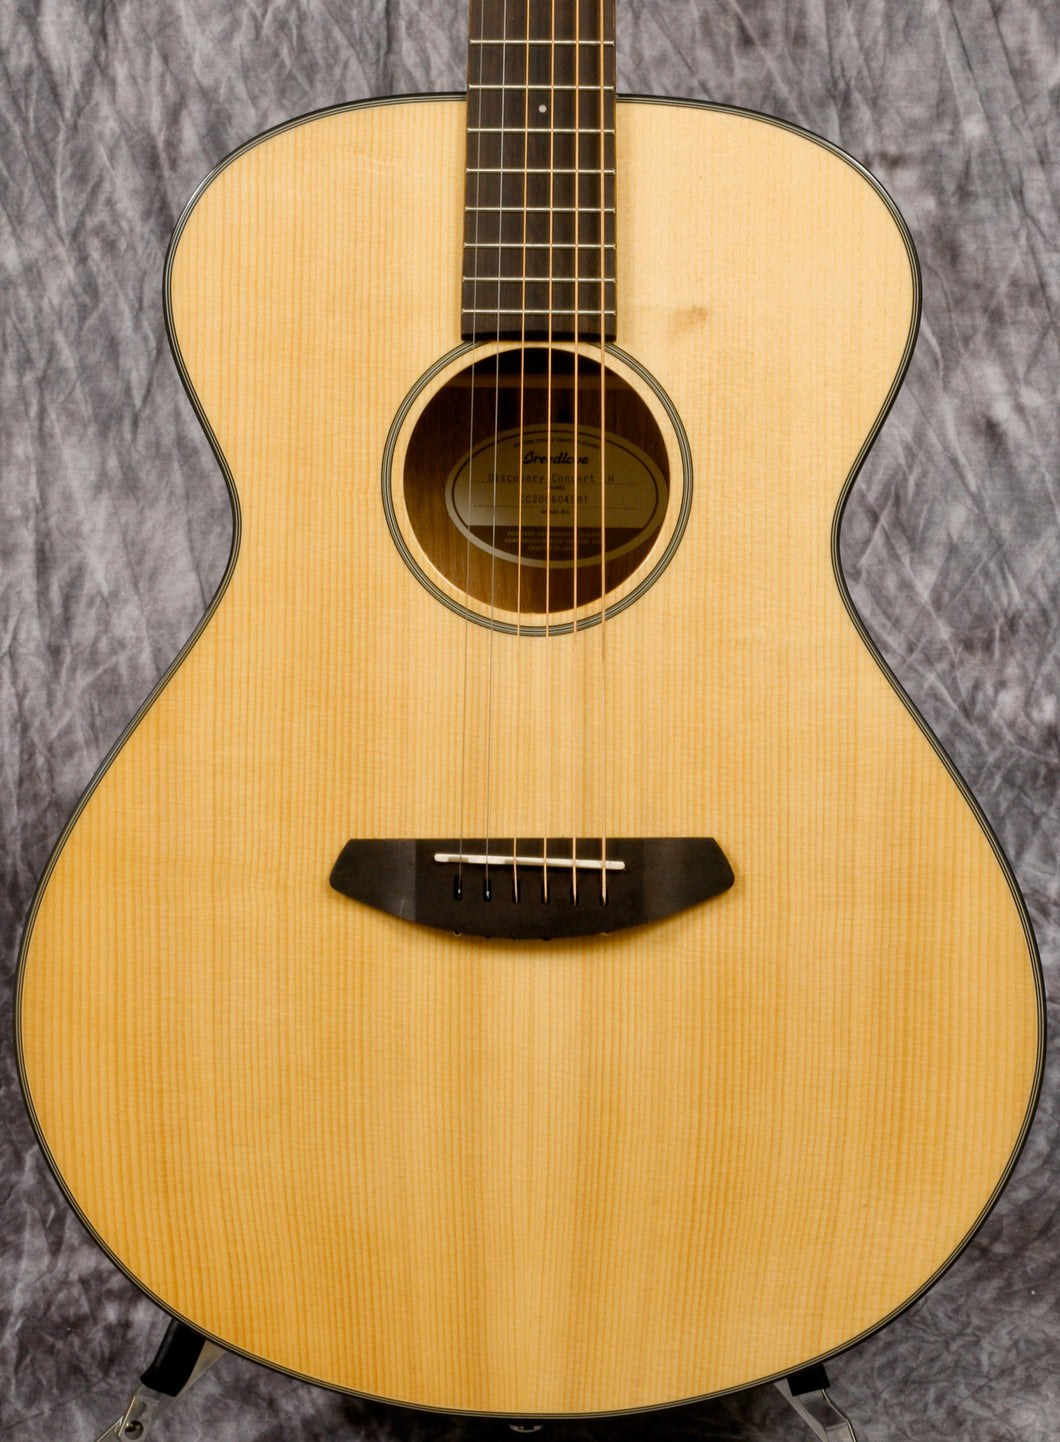 Breedlove Discovery Concert LH (Left-Handed) Sitka-Mahogany